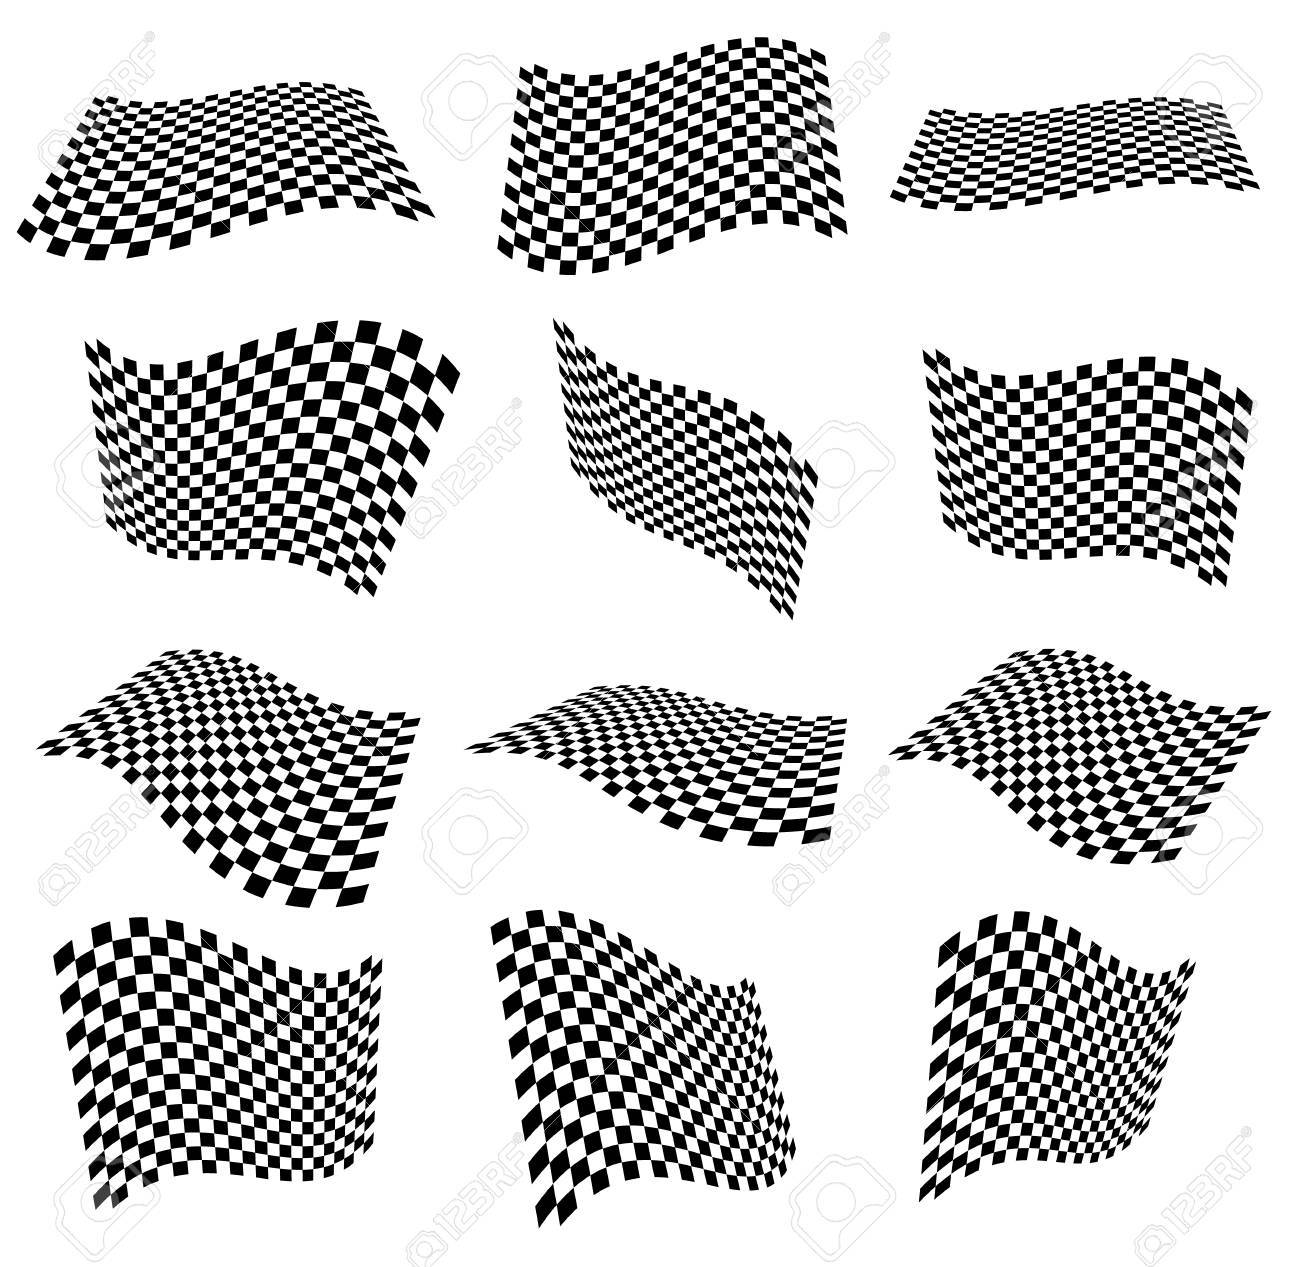 Waving checkered flags, surfaces. 3d planes with checkered surface - 38881957